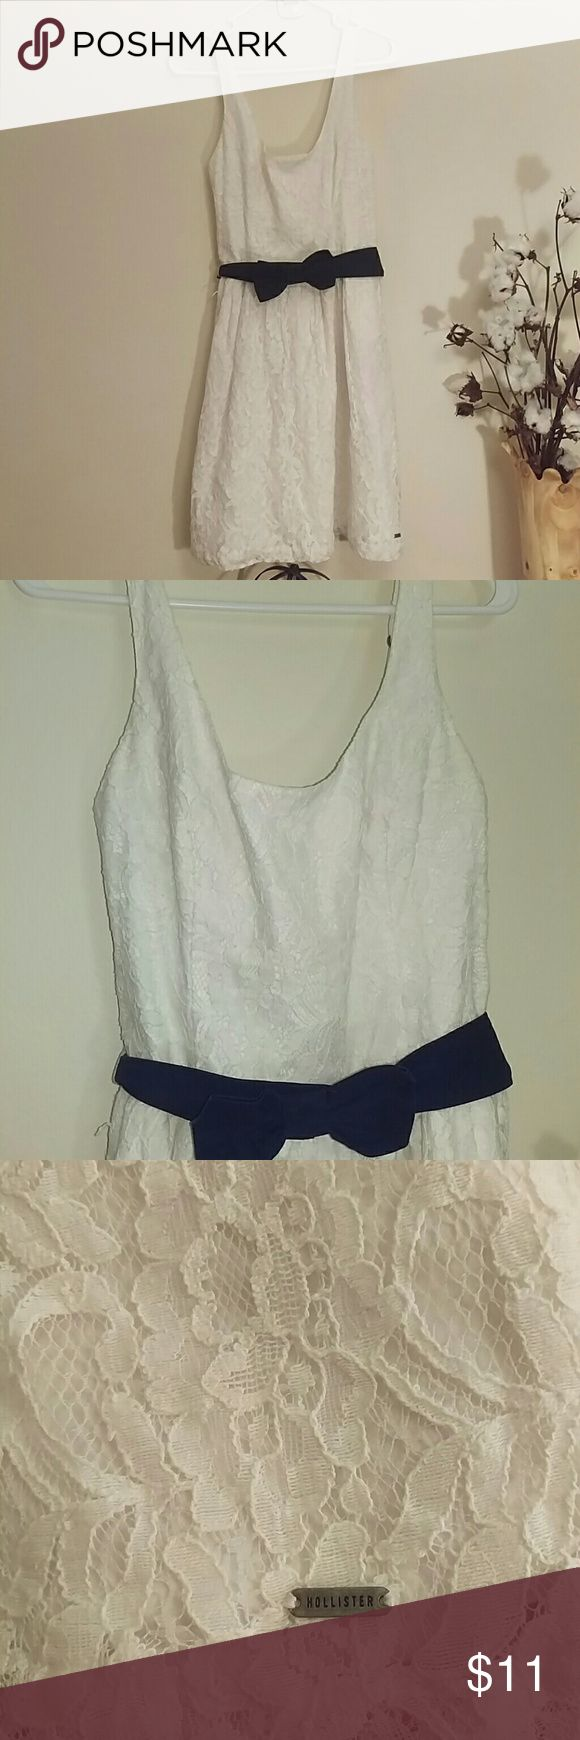 Hollister lace sundress with bow belt 🎓graduation Fully lined white lace sundress with bow belt and adjustable straps. Pleated skirt and bodice seams for nice fit. Hollister Dresses Mini